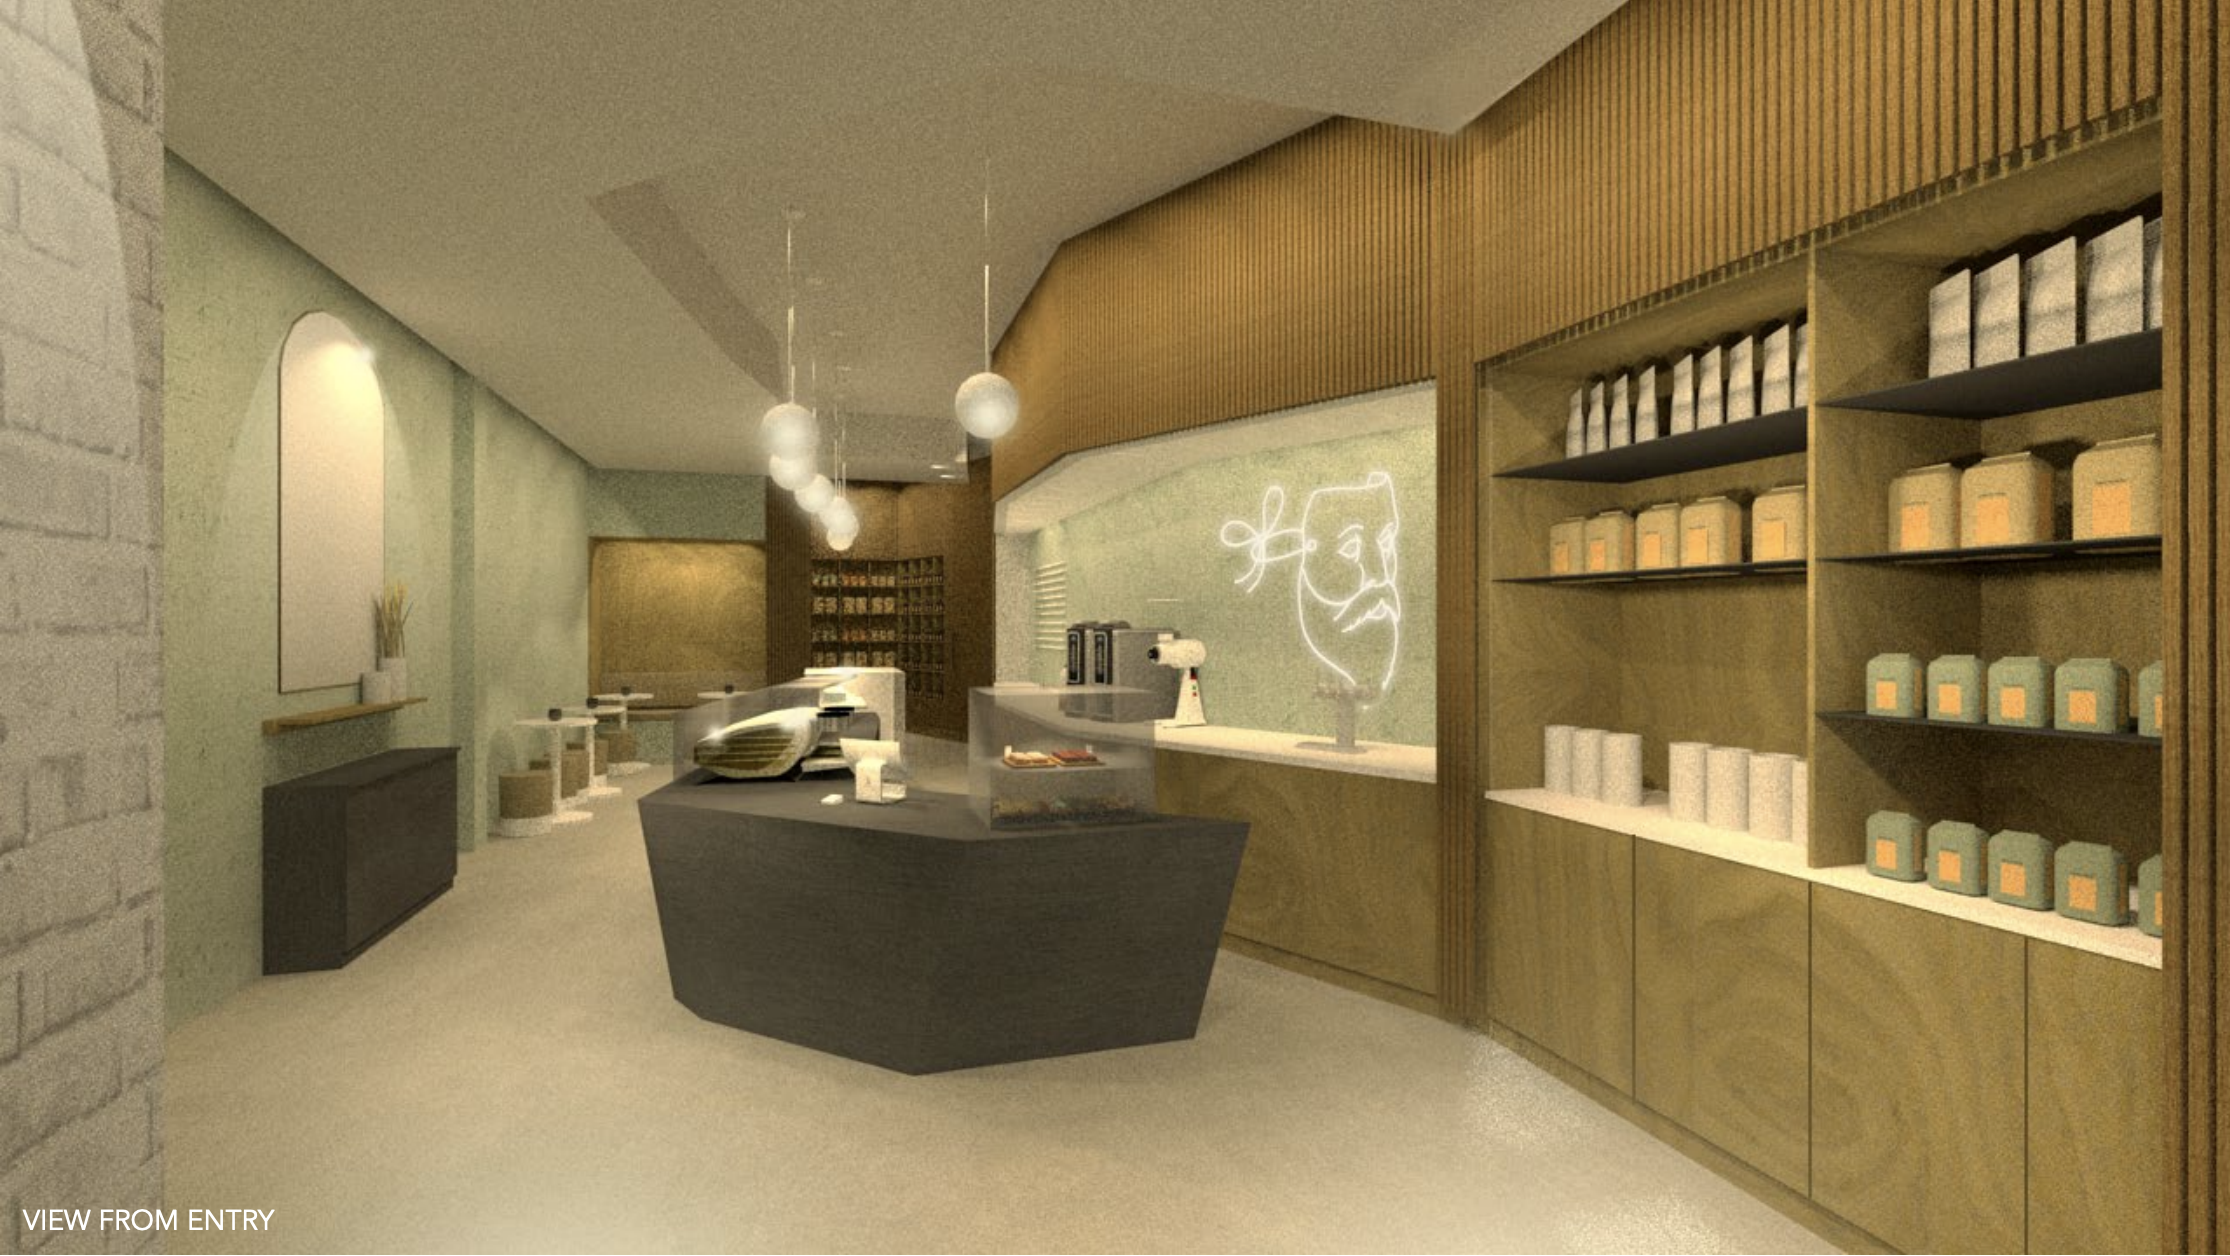 A rendering of a Danish-style cafe interior